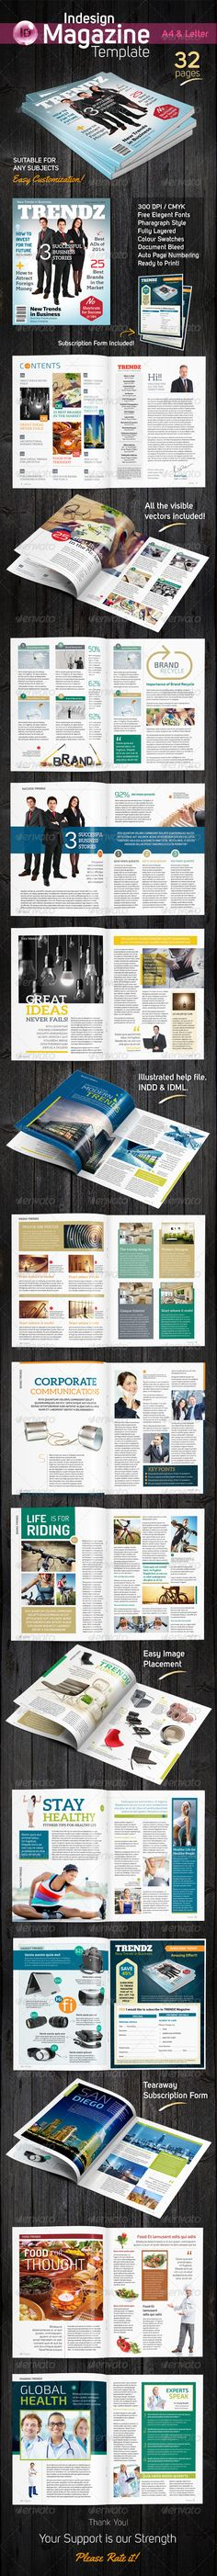 Indesign Magazine Template by laksME Trendy Multipurpose InDesign magazine suitable for any kind of topics. Simple and modern layouts. Corporate colour swatches and pa